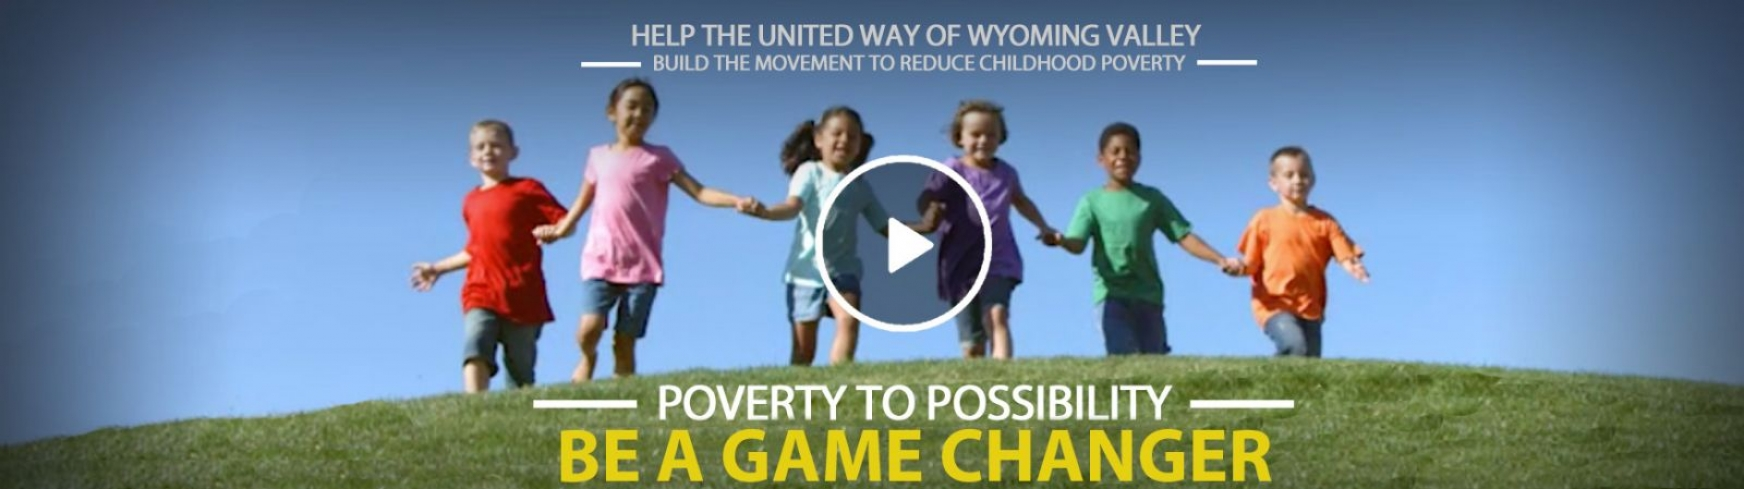 PLEASE HELP THE UNITED WAY OF WYOMING VALLEY </br> BE A GAME CHANGER TO REDUCE CHILDHOOD POVERTY.